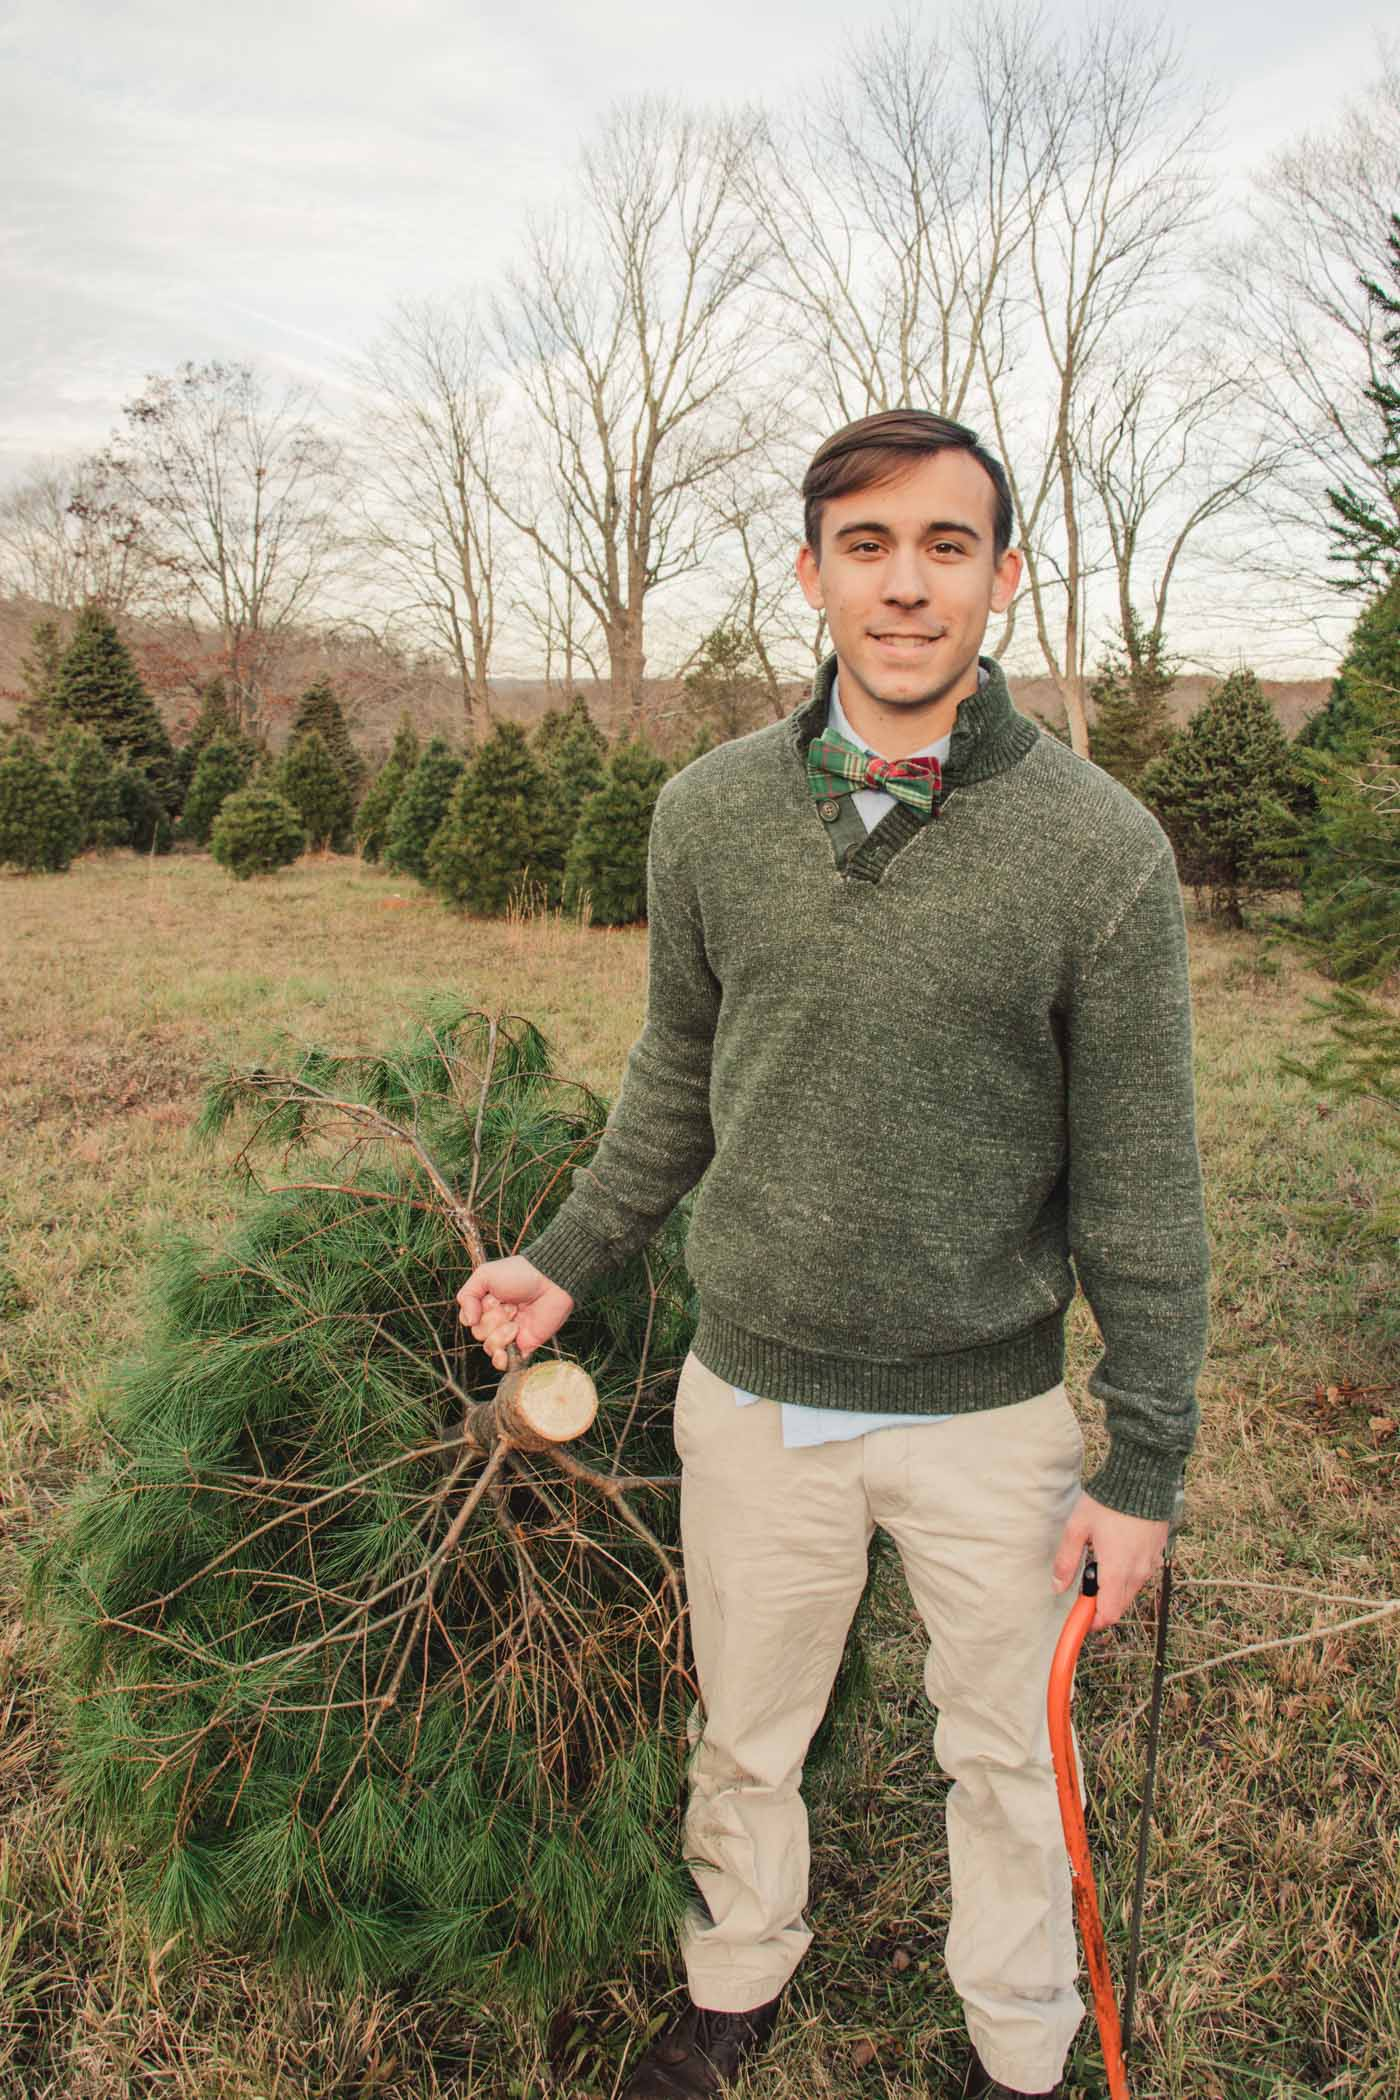 Chopping down the Christmas tree - Simply Lovebirds - New England Lifestyle Blog